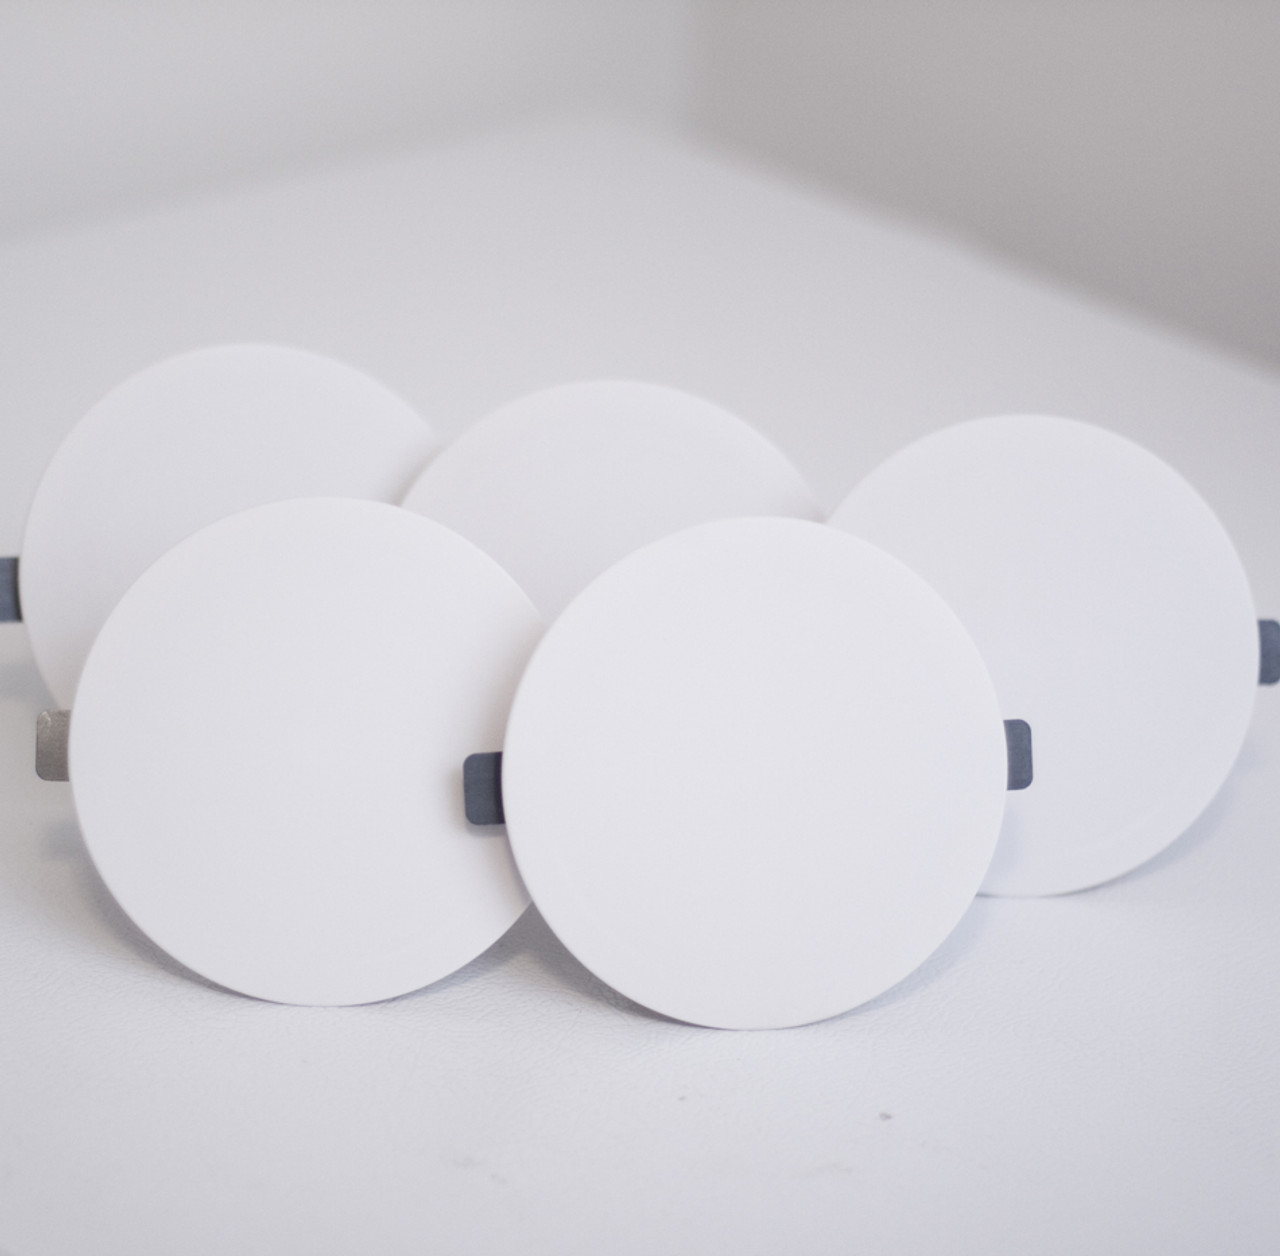 Round In Ceiling Speaker Hole Cover Plate Best 2018